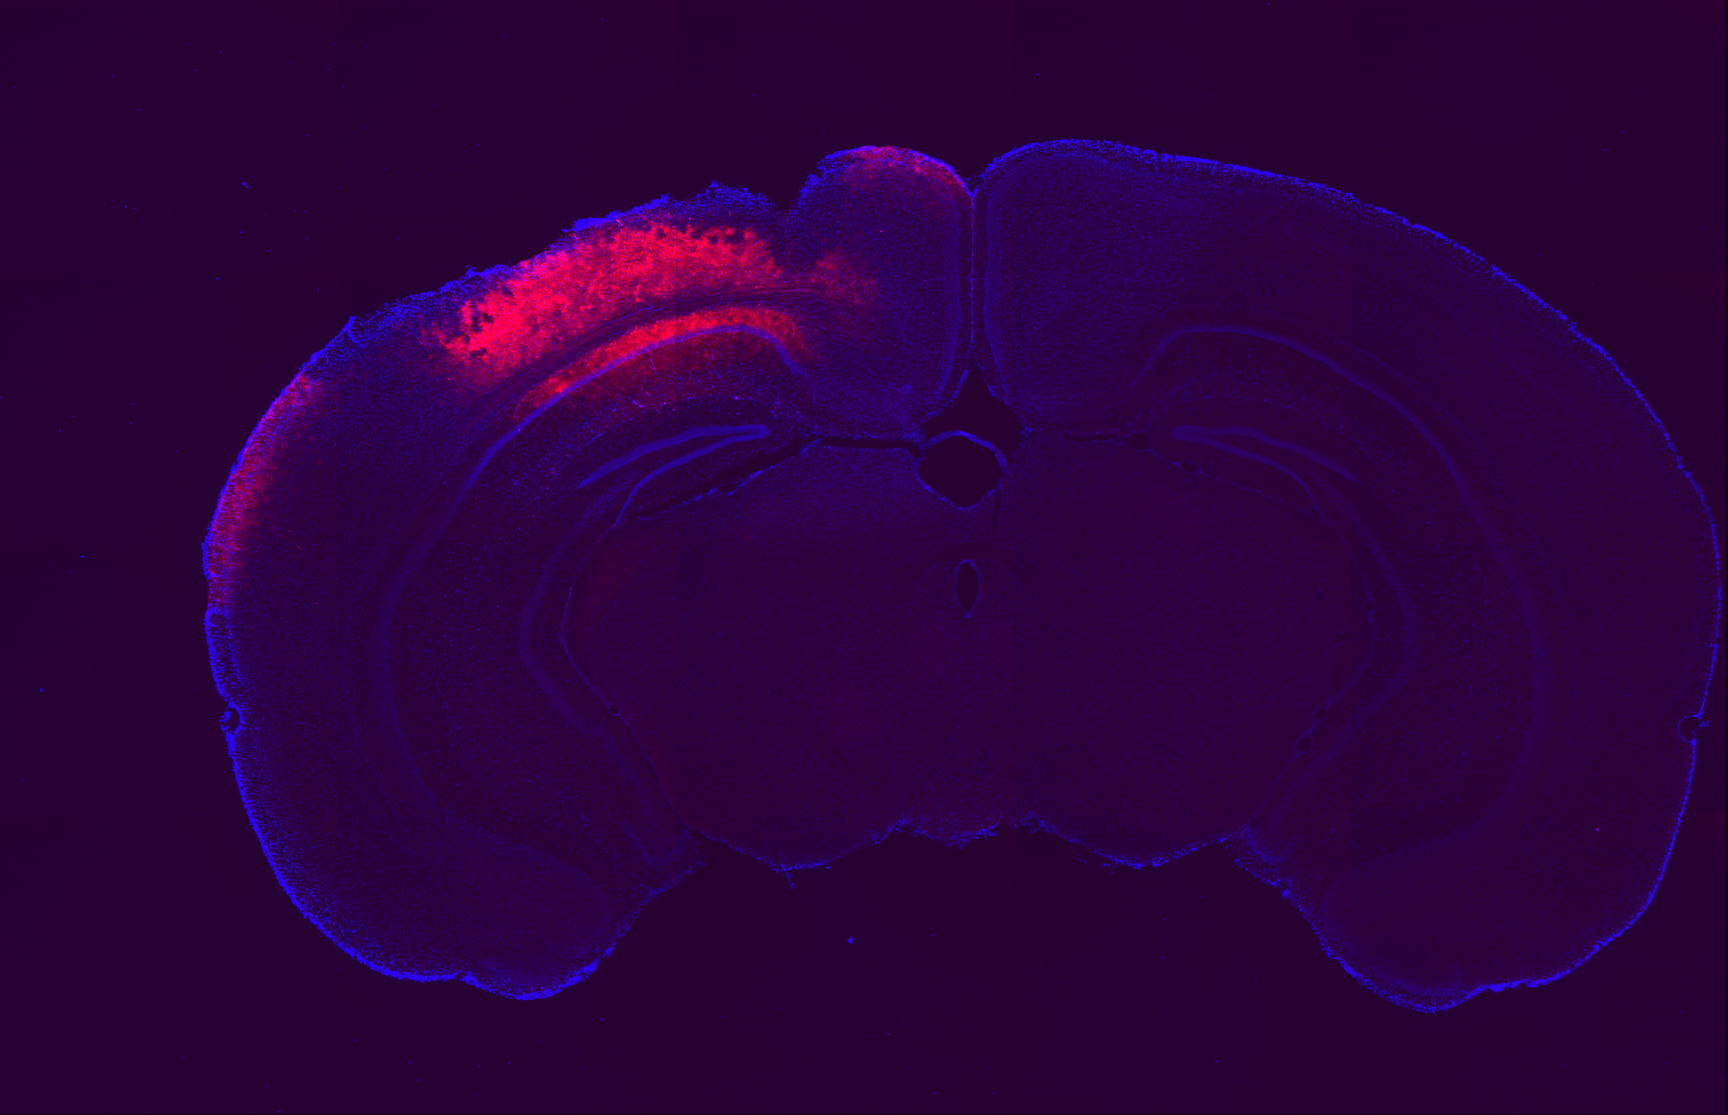 Zeiss Axioskop, 5x objective, red = mCherry, blue = DAPI